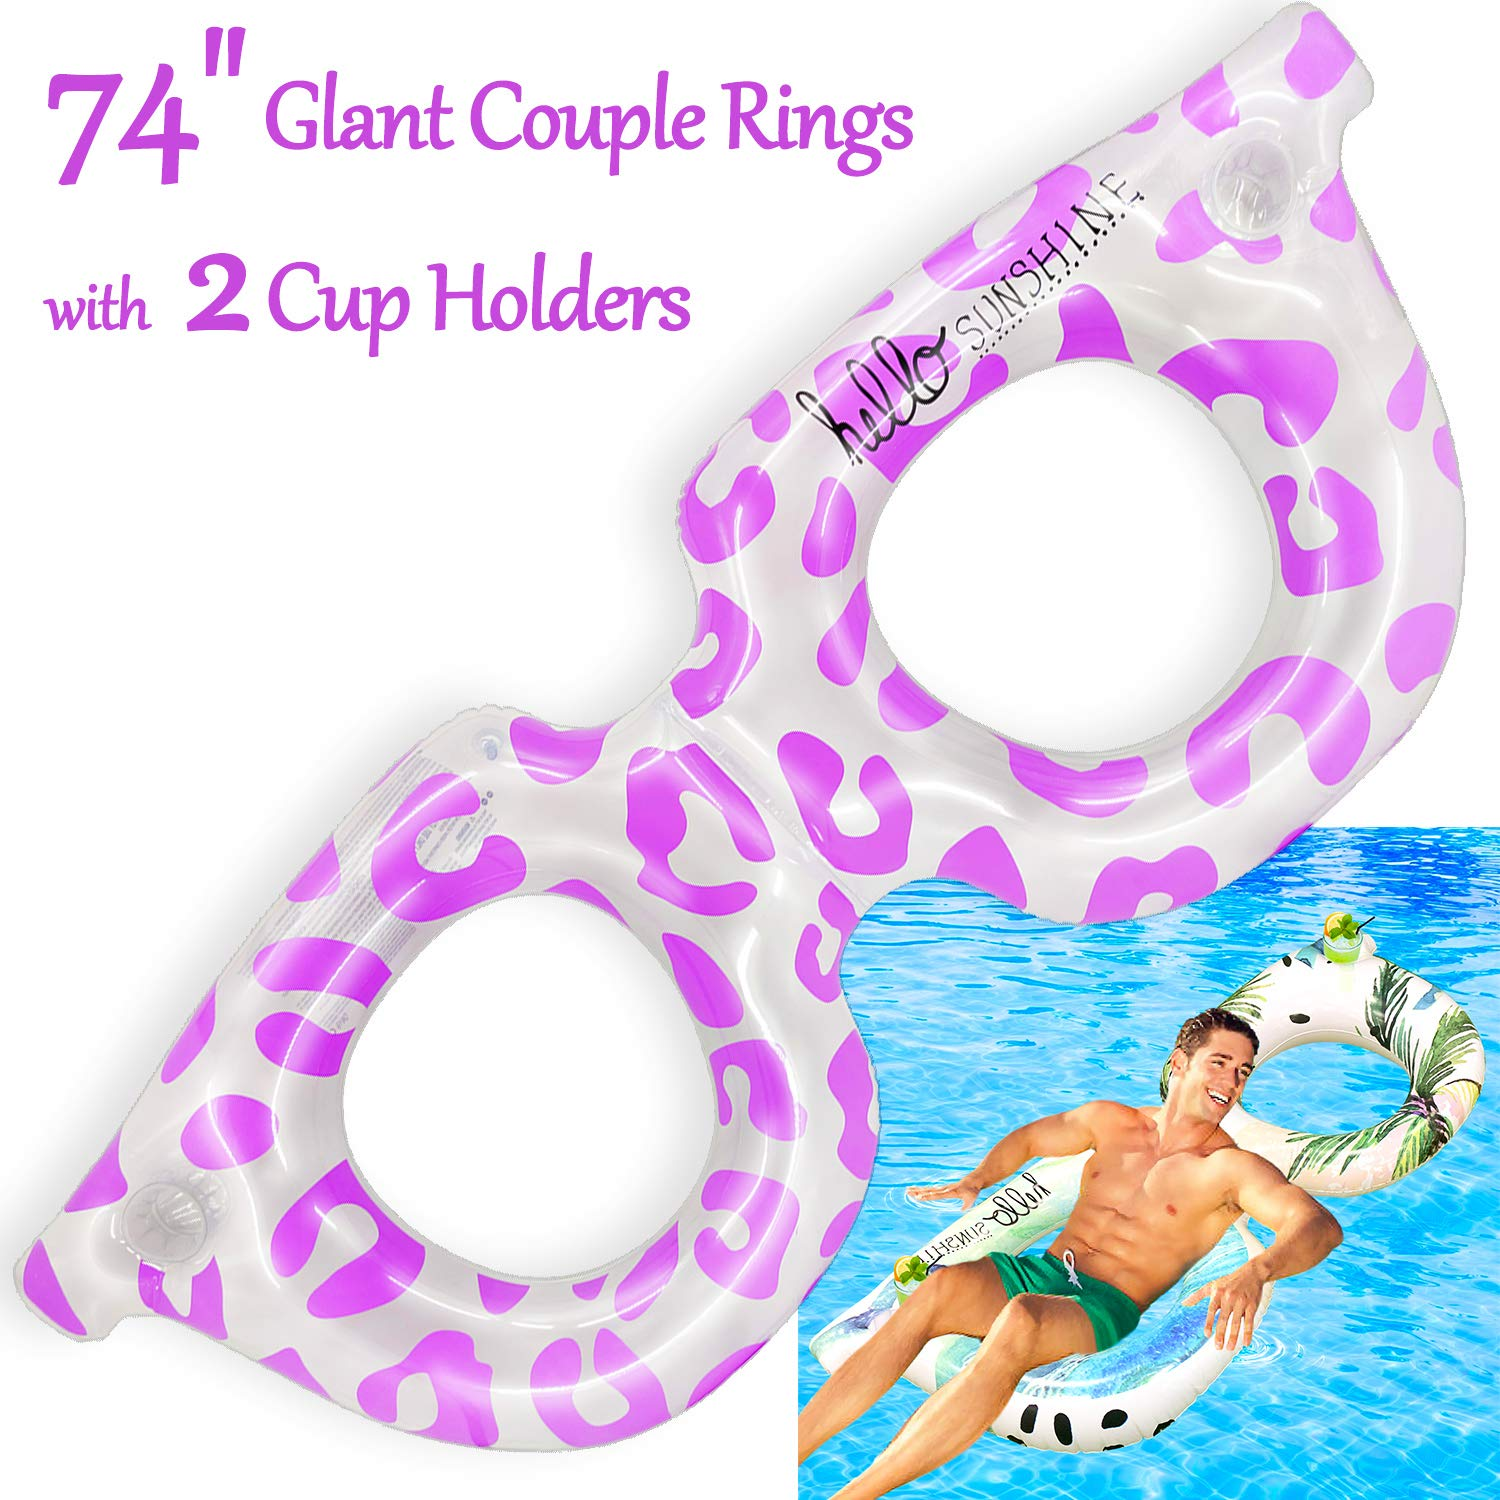 """AMENON 74"""" Giant Sunglass Inflatable Pool Float Couple Rings Pool Float Lounge with 2 Cup Holders, Funny Beach Floaties Swim Party Toys Summer Pool Raft Lounger Chair Float for Adults & Kids (Pink)"""